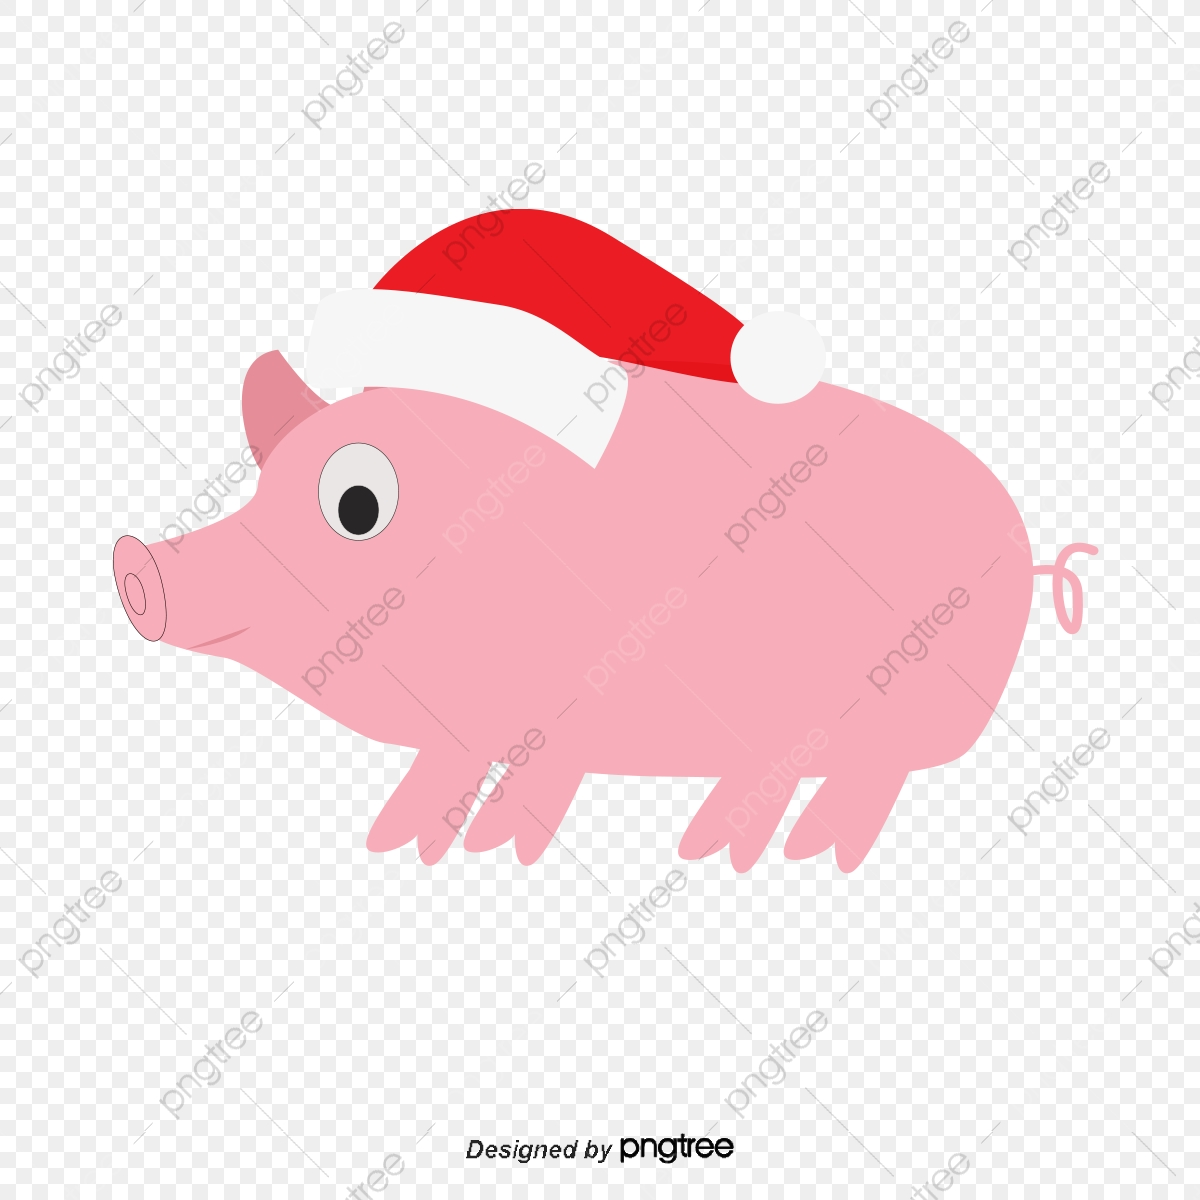 Christmas Pig Meng Meng, Pig Clipart, Decoration, Vector PNG and.